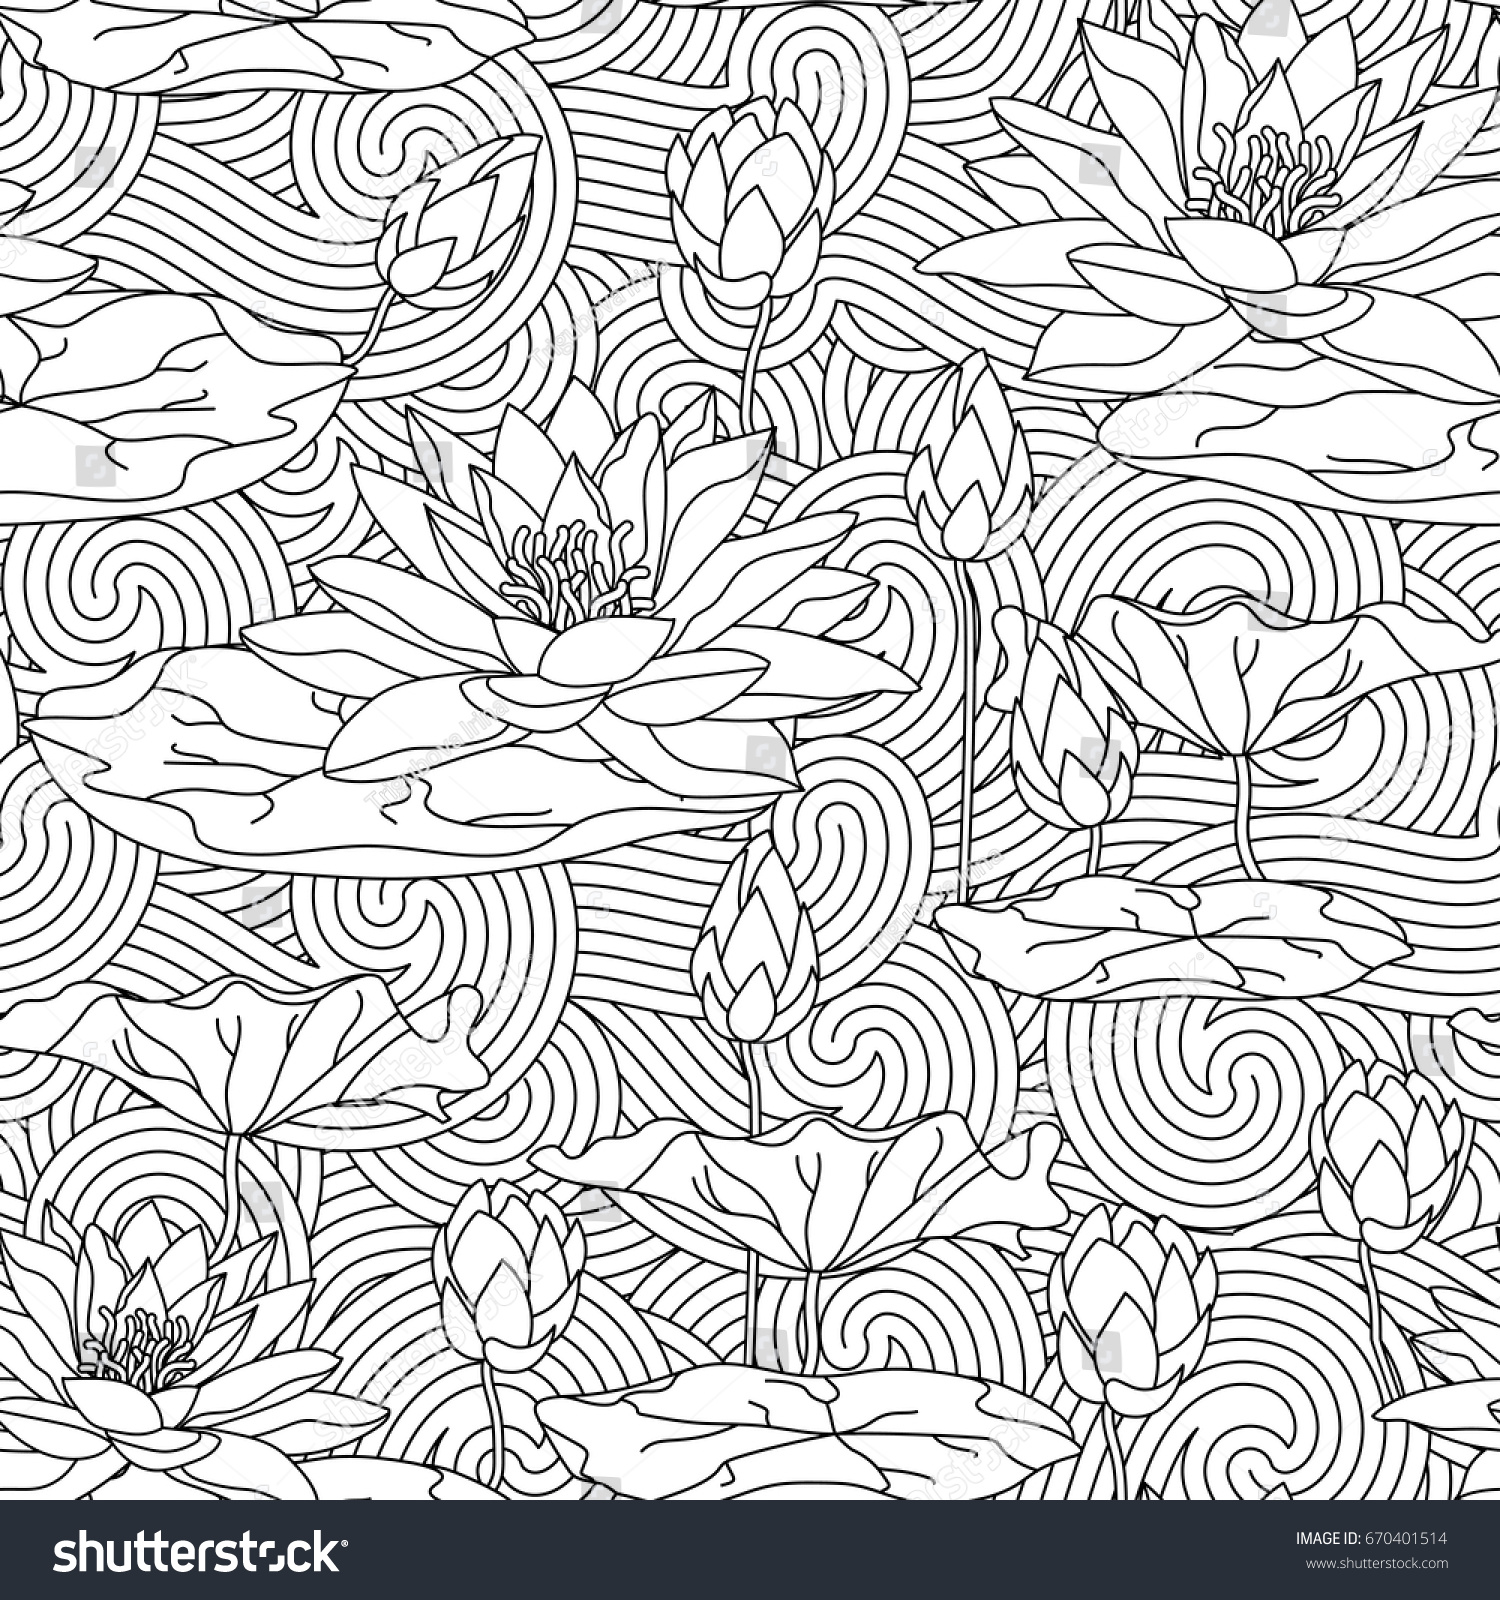 Lotus designs coloring book - Adult Antistress Coloring Page With Water Lily Seamless Pattern Cards With Lotus Leaves